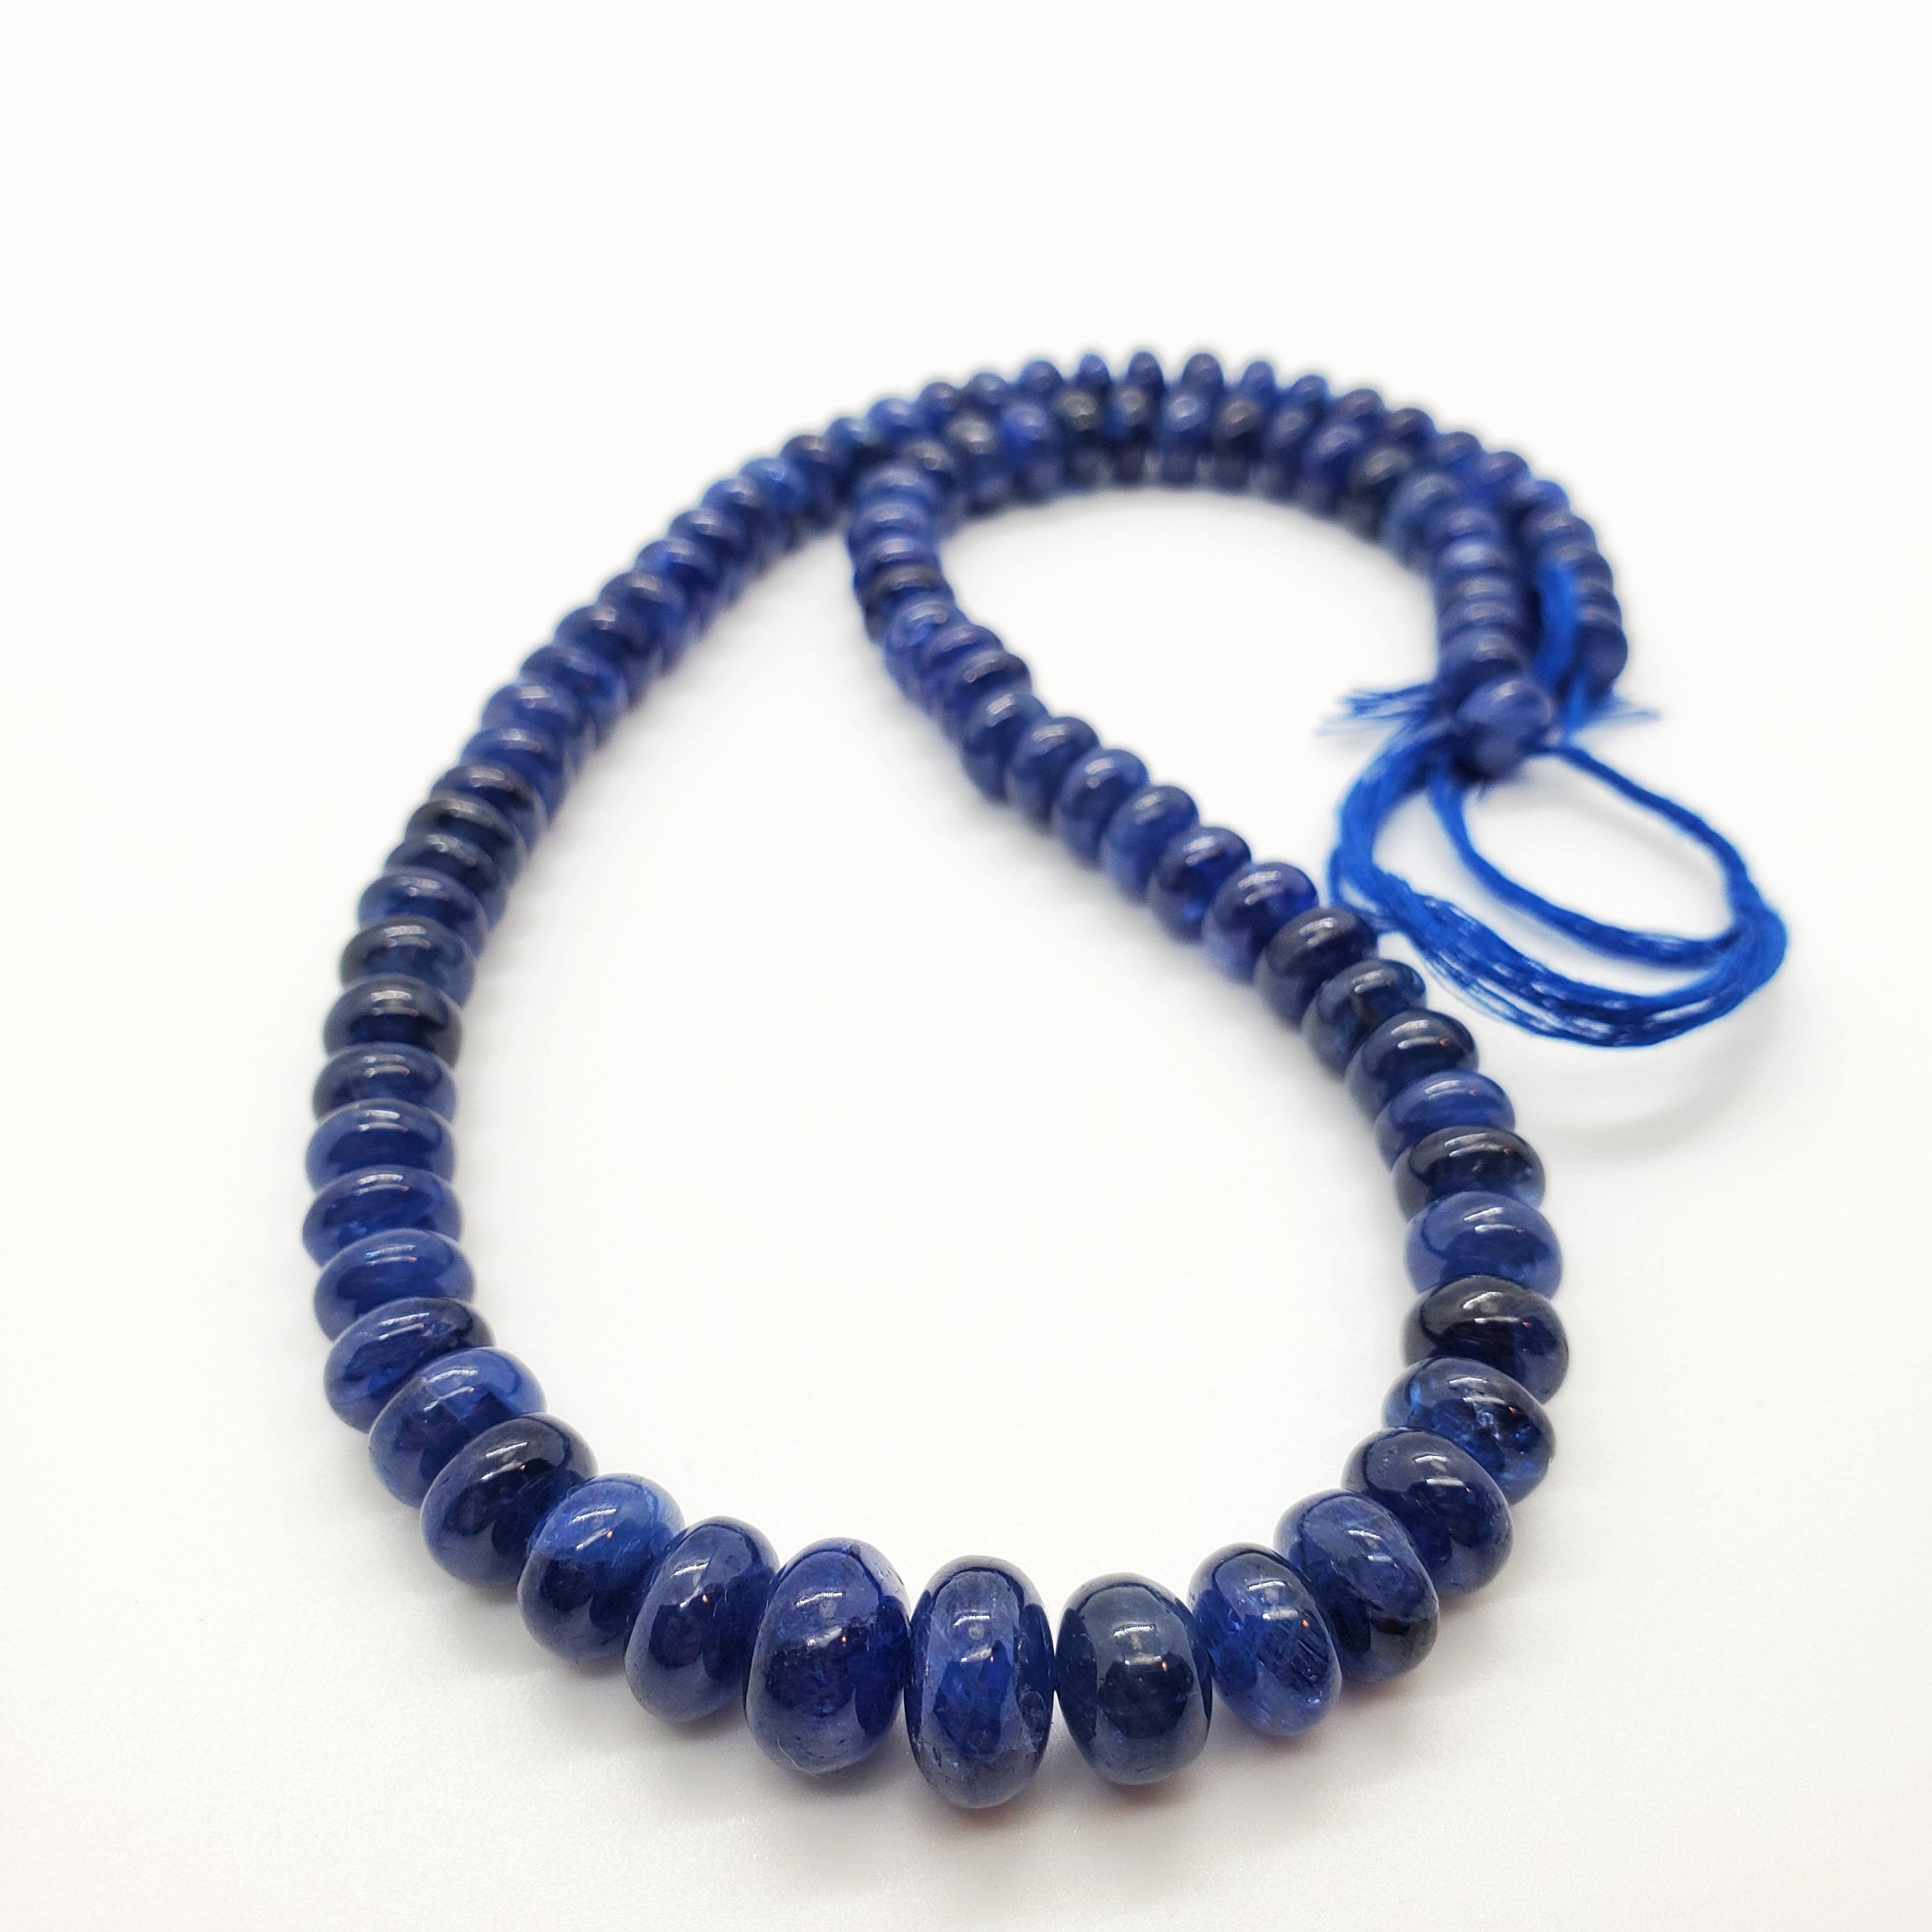 Blue Sapphire Smooth Roundel 7-10mm